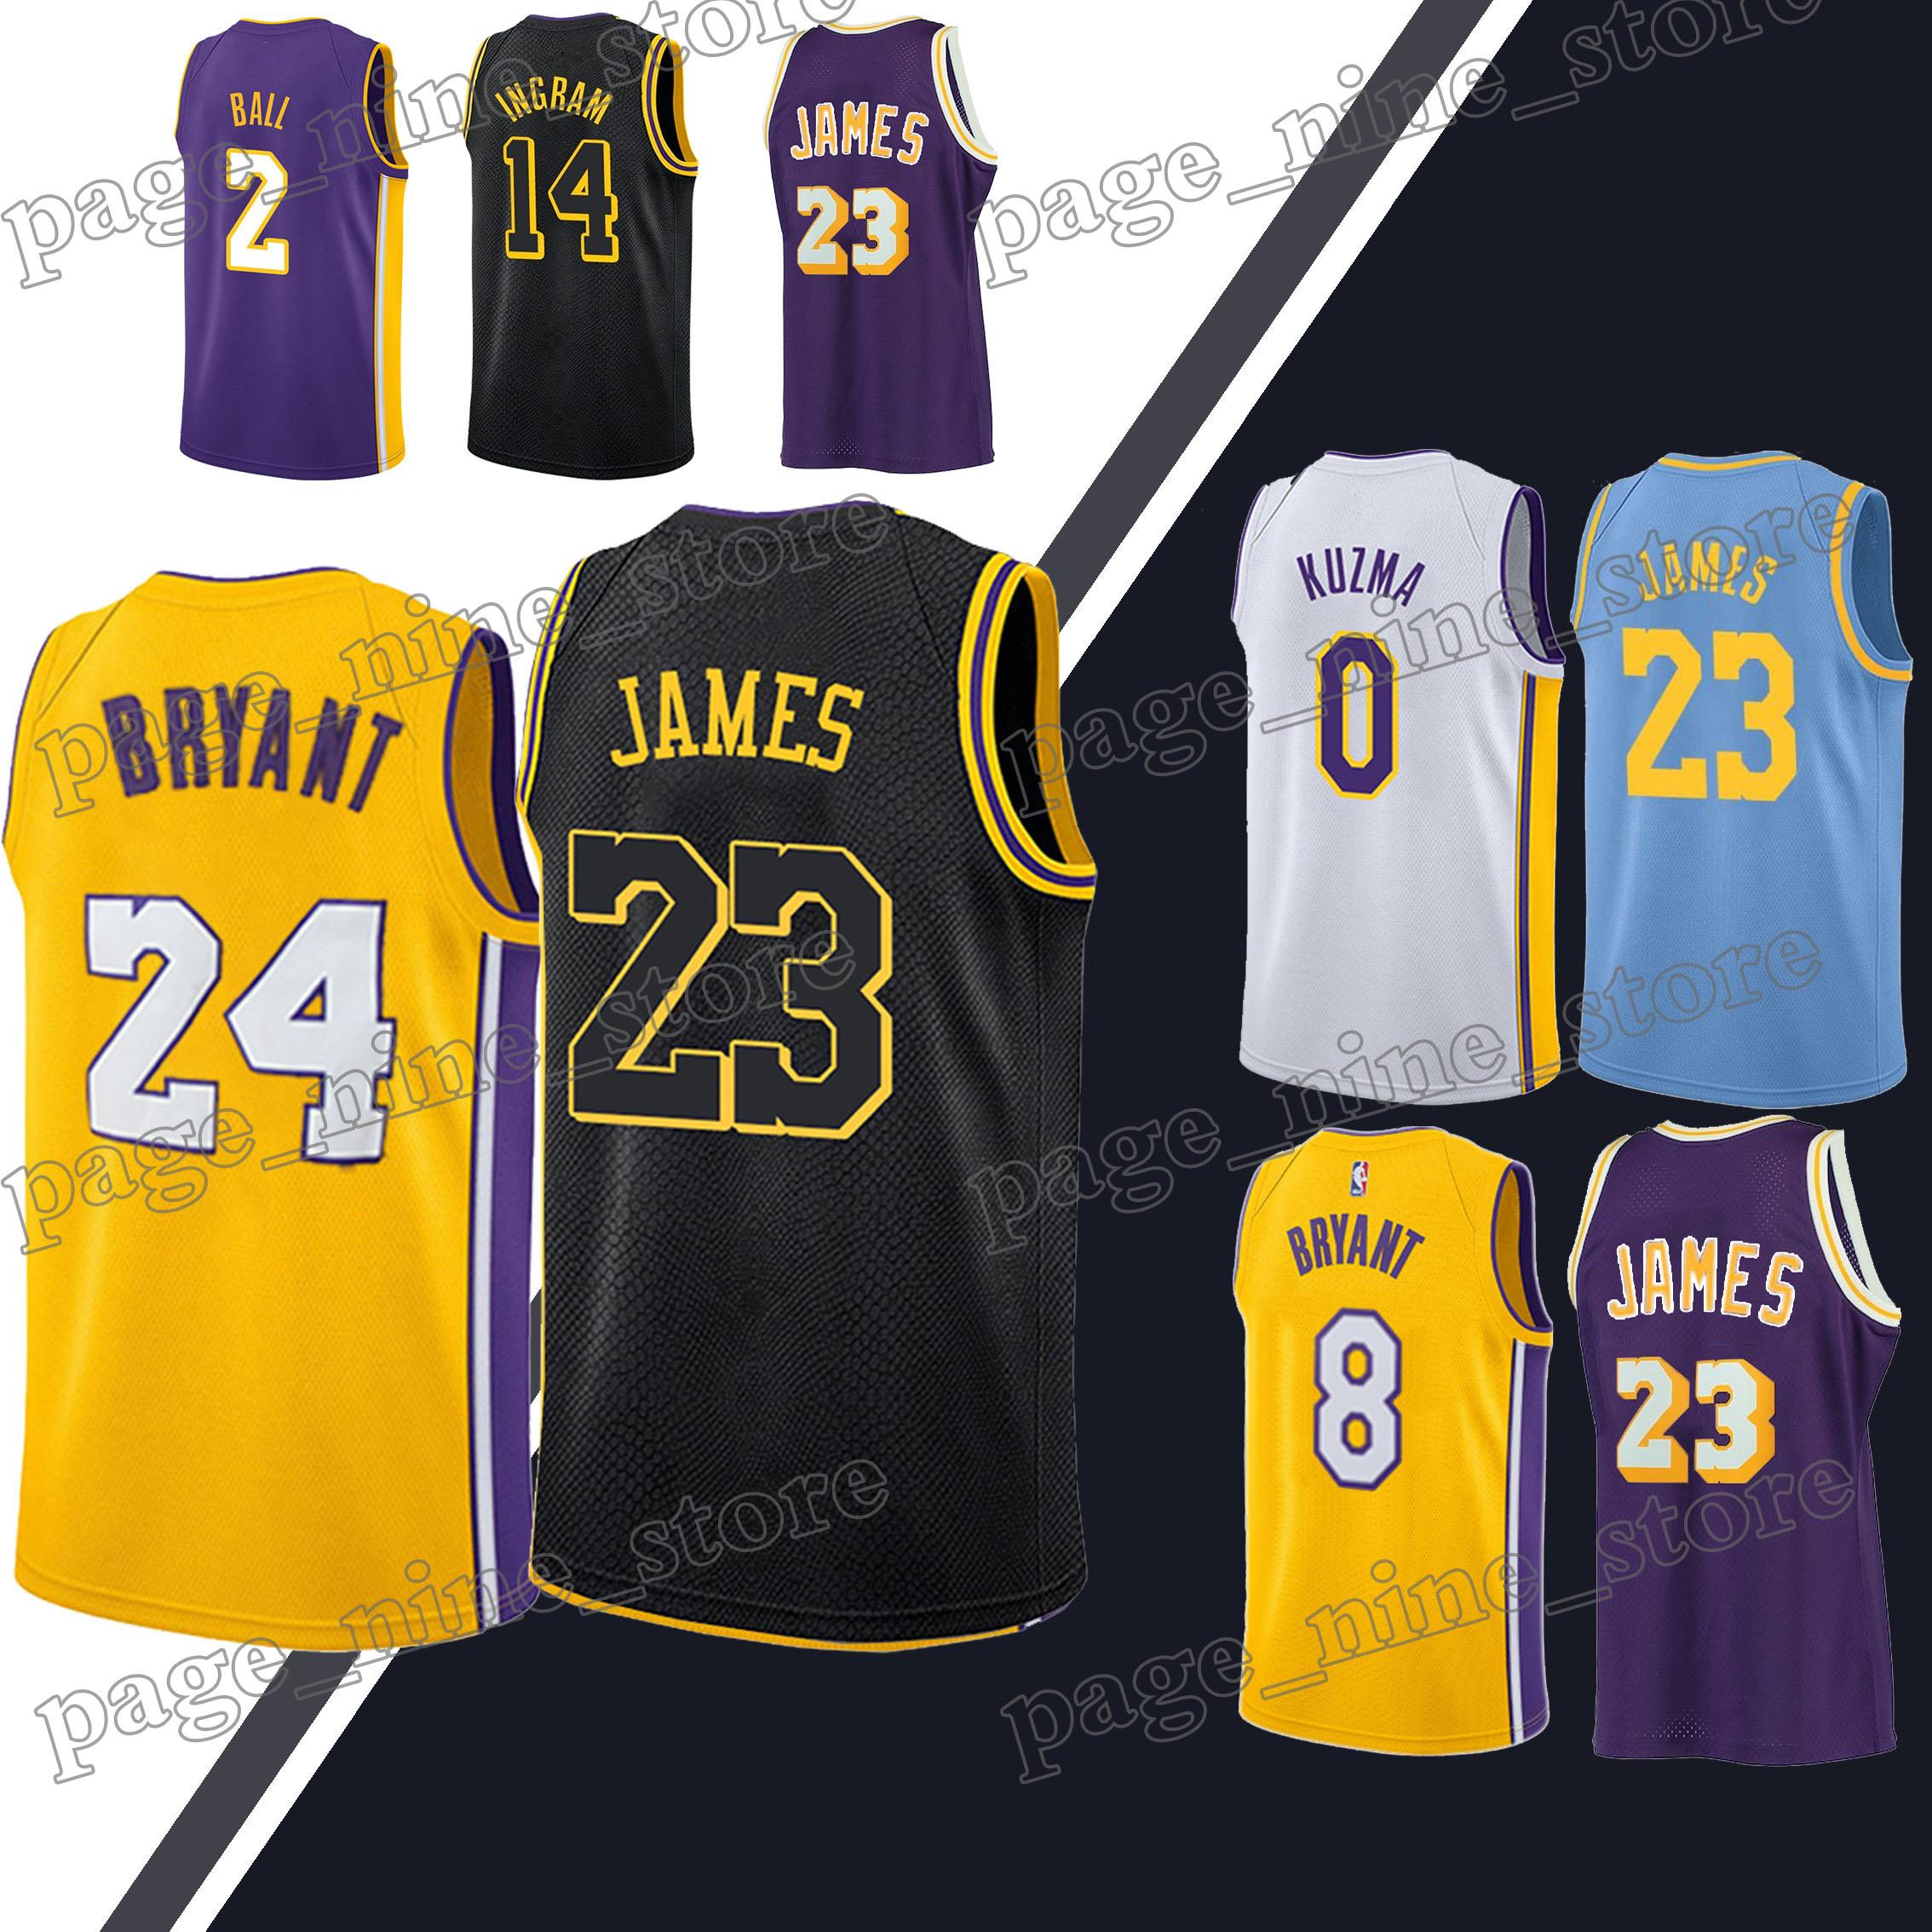 detailed look 9e9f7 8c134 Laker jerseys 23 LeBron James jersey 0 Kuzma 2 Ball 24 Bryant jerseys 2019  men basketball